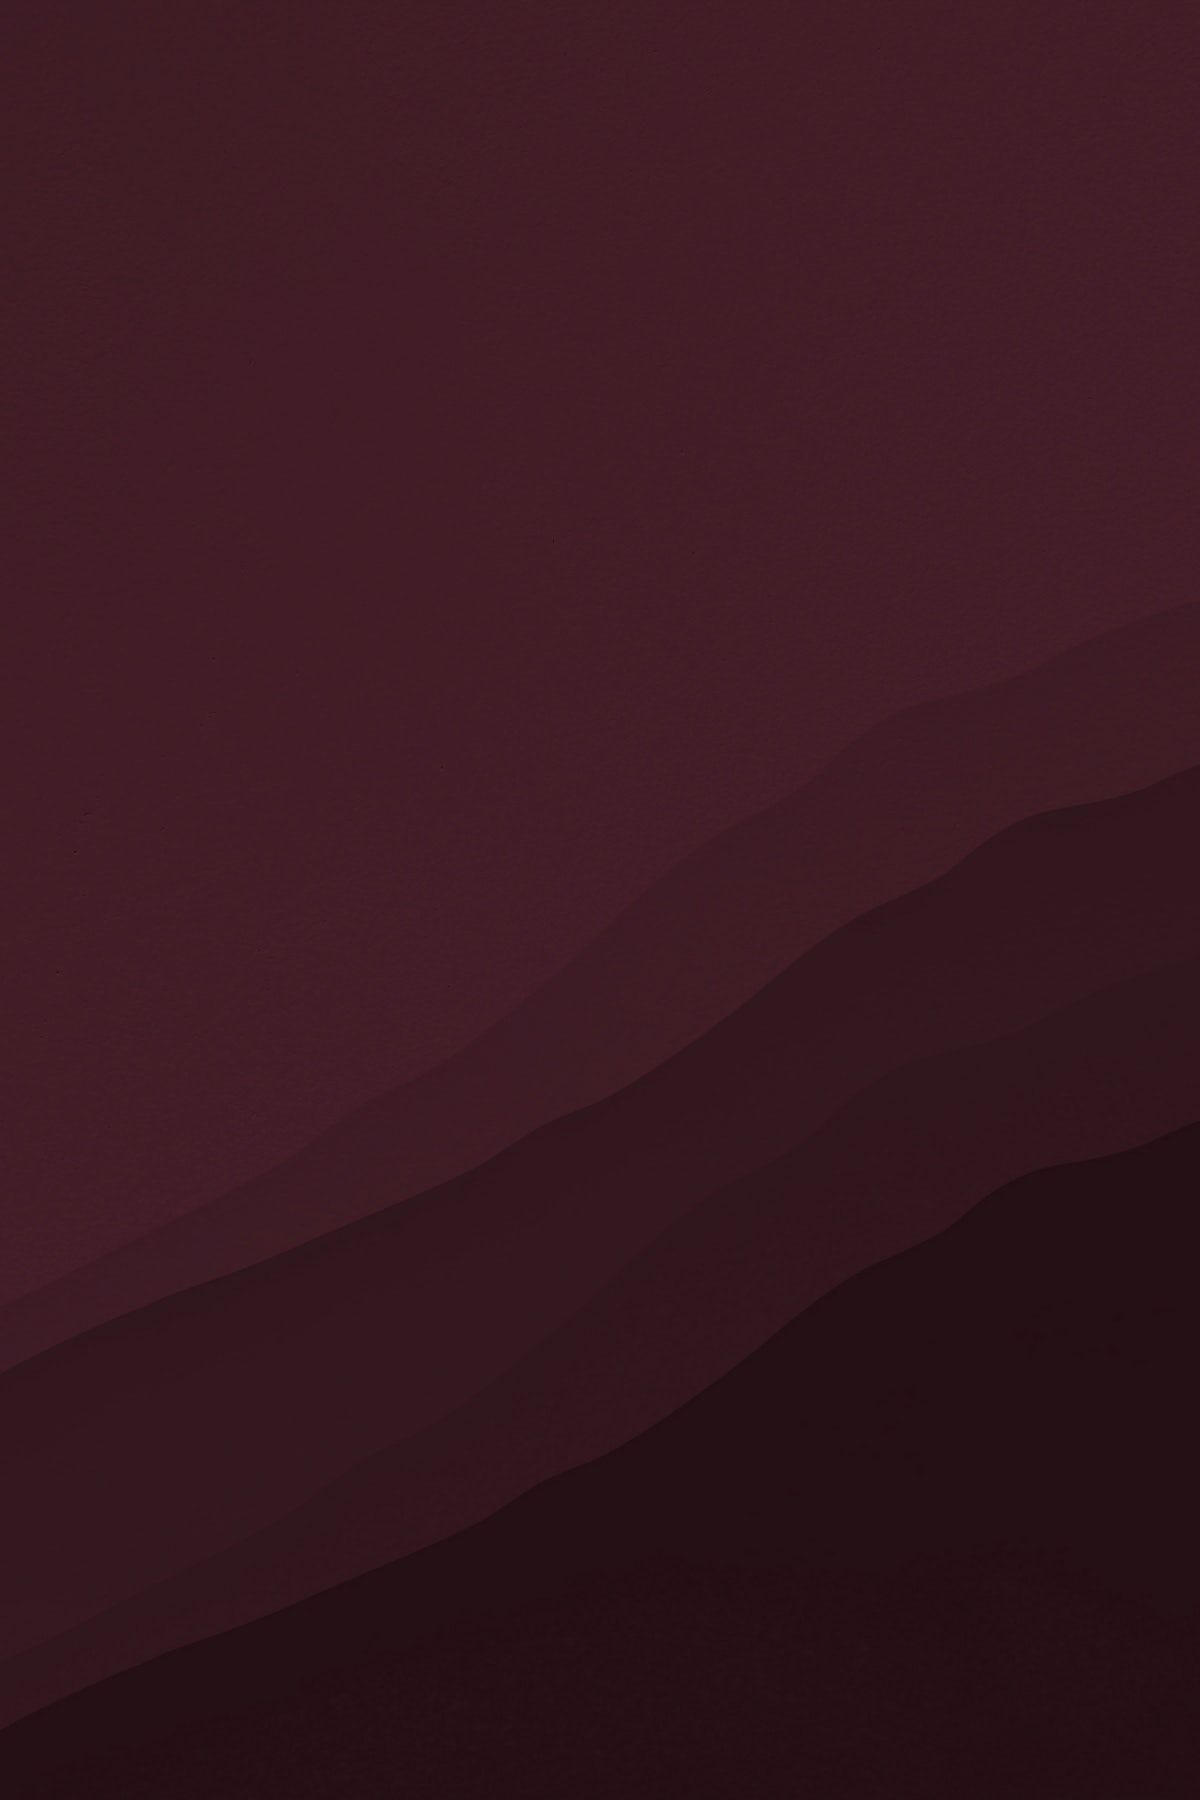 Download Free Illustration Of Abstract Wallpaper Maroon Background Image By Nunny About Abstract Abstract Back In 2020 Maroon Background Free Illustrations Background